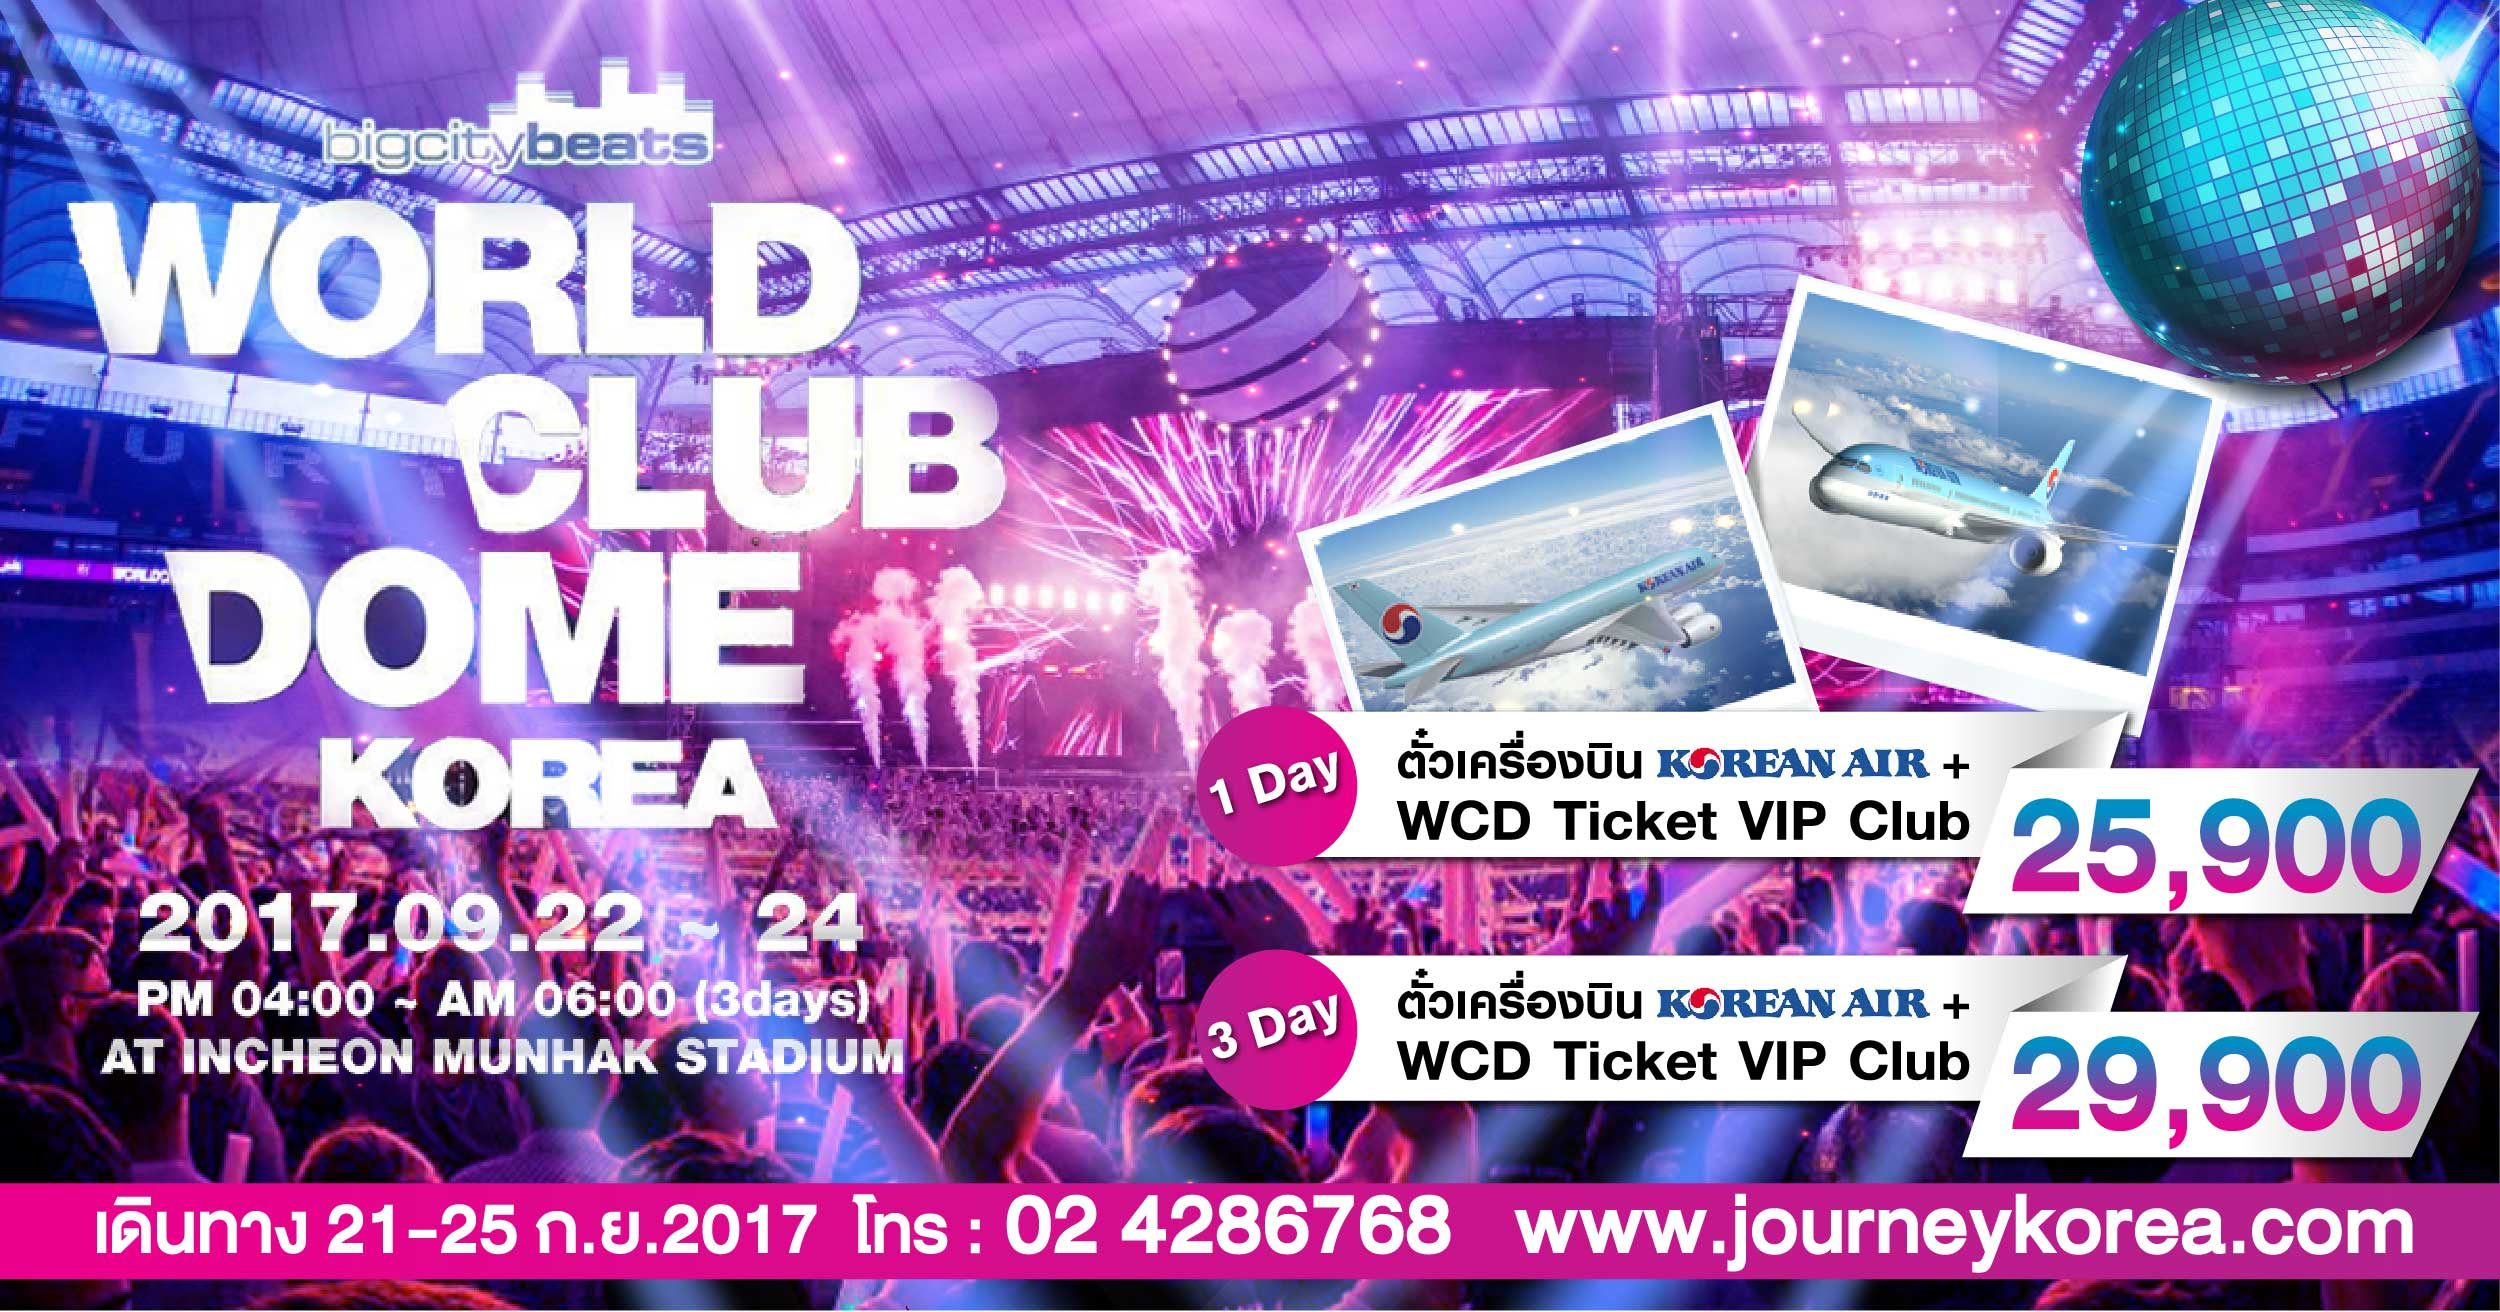 wold club dome(korean air)-01